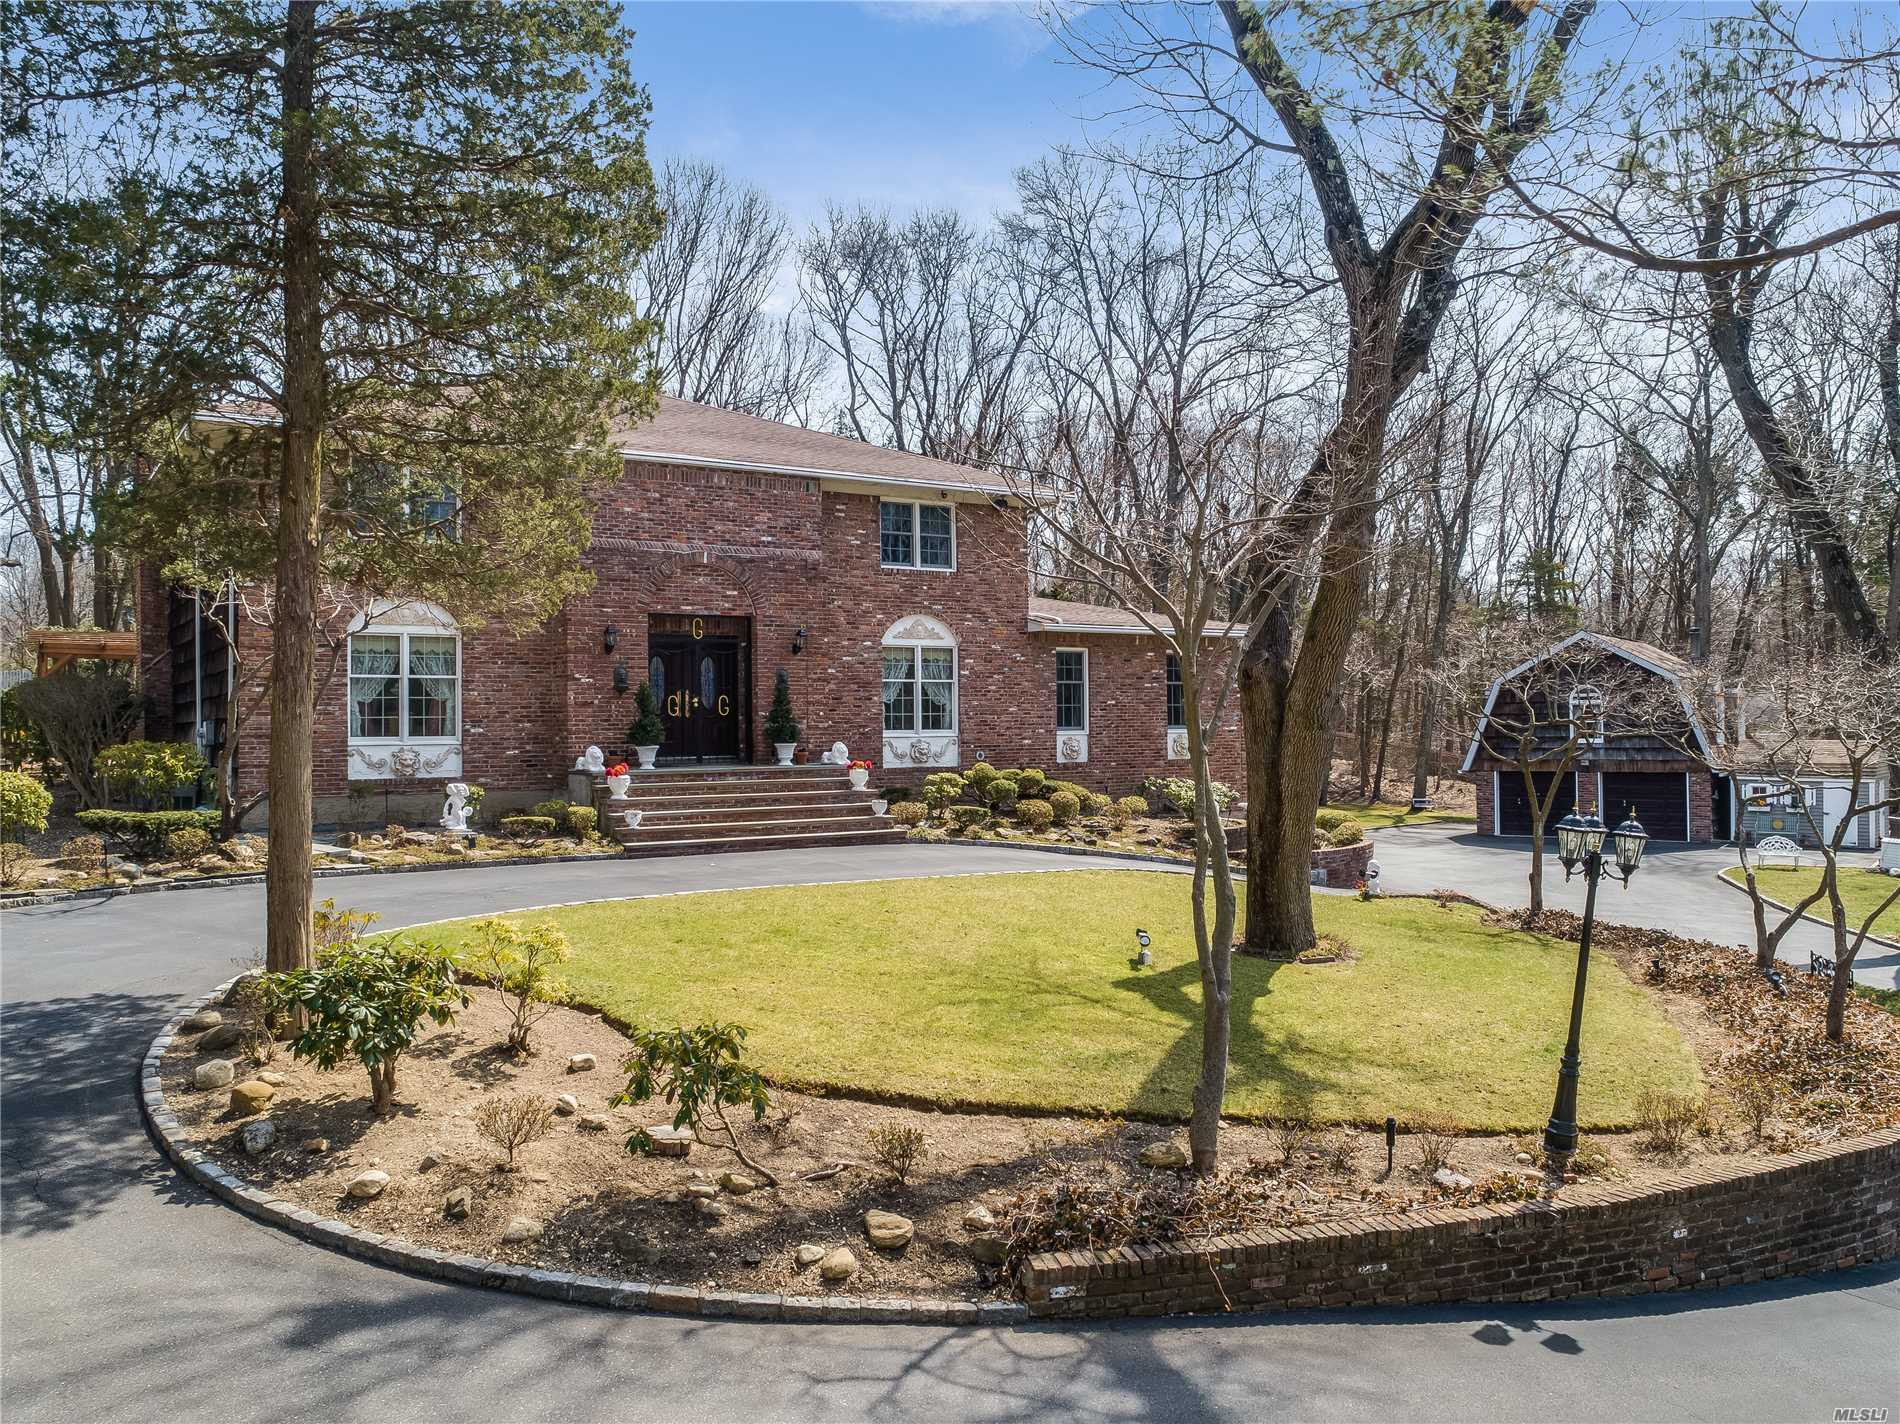 A Magnificent Driveway Leads You To a Trad Colonial, Beautifully Situated on 2 Acres In Upper Brookville. This Home Offers a Unique Flr Plan Ideal for Entertaining. It Boasts 5 Lrg Bdrms, 3.5Bath, EIk/Granite Countertops, 2 Expansive Dens with a Wood Burning Fire Place, and Hardwood Floors Thru. The Mstr Suite Incl a Dressing Area. Beautiful Granite Mstr Bath with Sunlite Windows Overlooking 2 Acres of Lovely Foliage. Home also incl additional 2 Car Garage With Sep Upstairs Apt W/ Outside Ent.